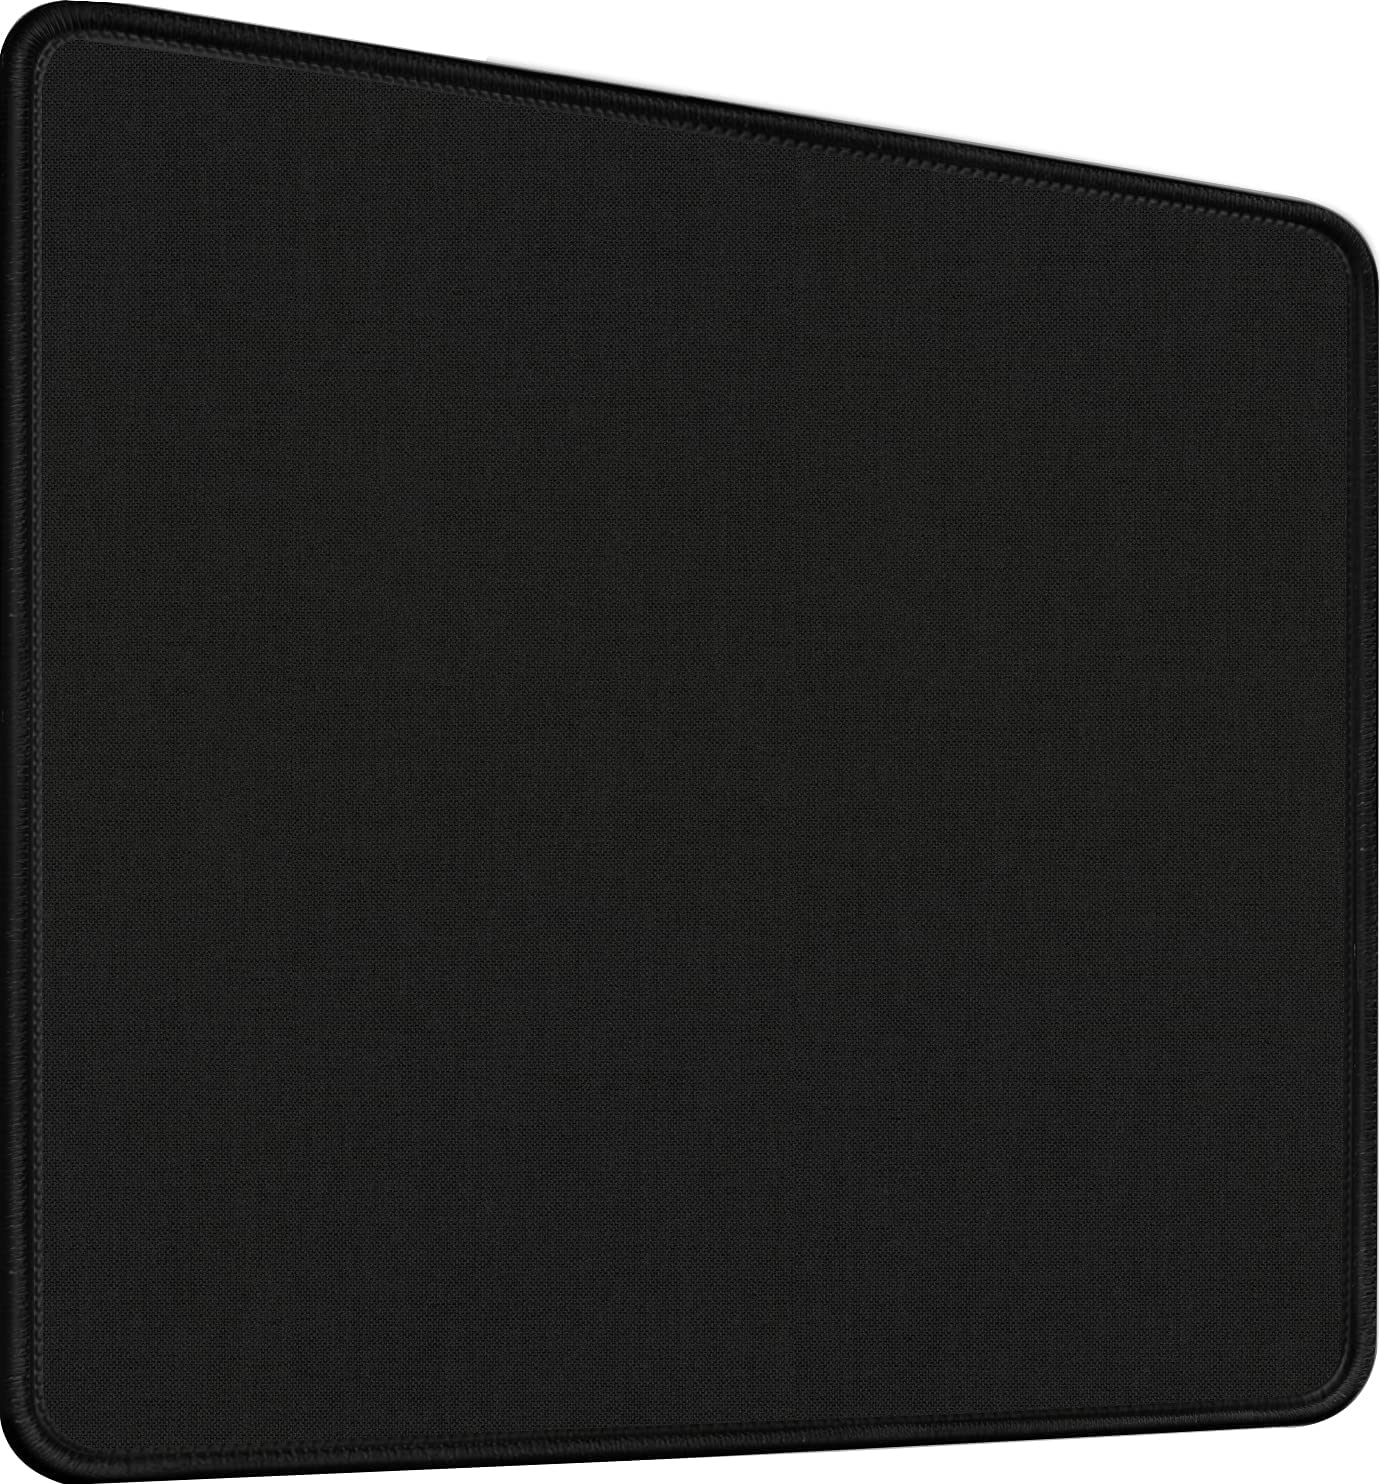 Medium Black Mouse Pad for Wireless Mouse,11.8